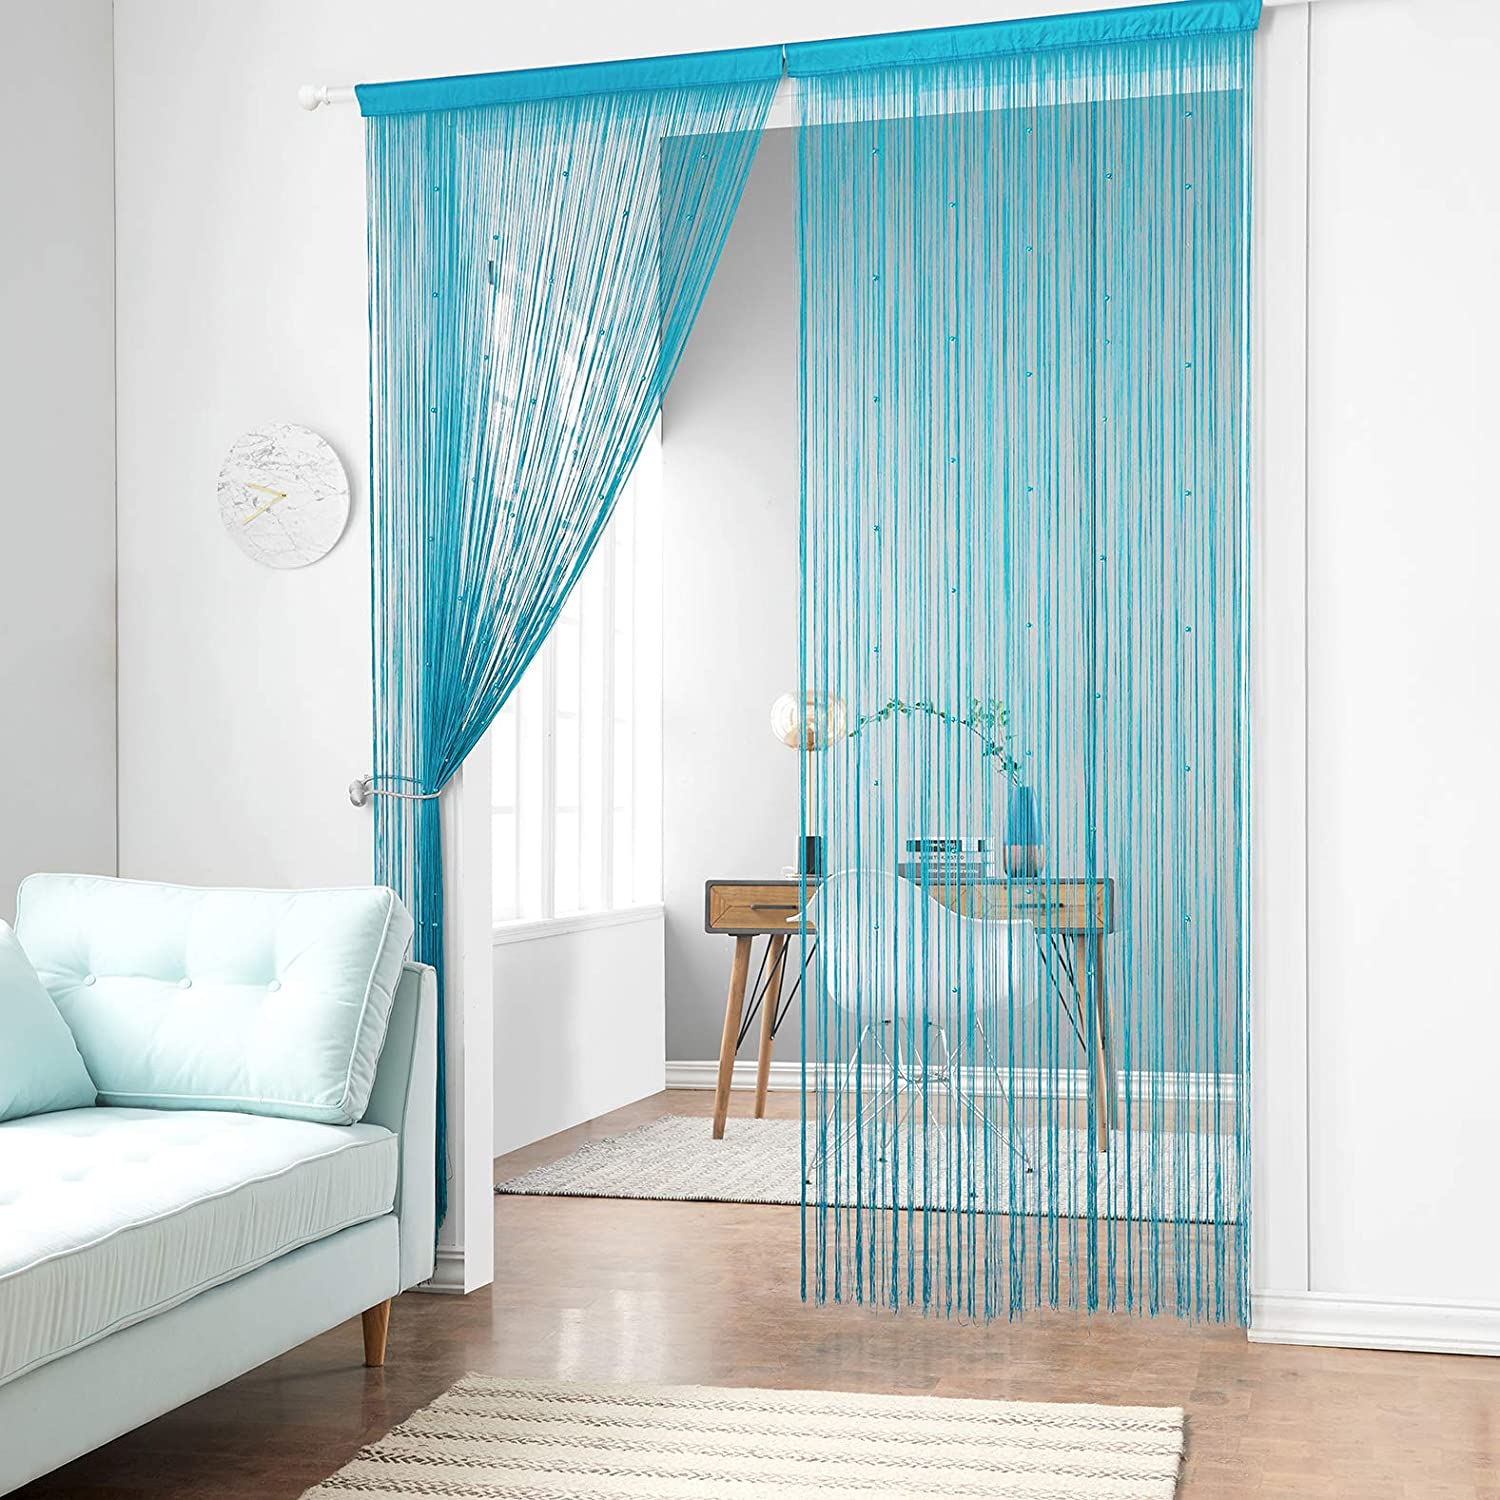 Taiyuhomes Dense Beads String Curtains Fly Screen Beaded Doors Curtain Multi-Function Insect Screen or Room Divider,(90x200cm),Blue 90x200cm Blue